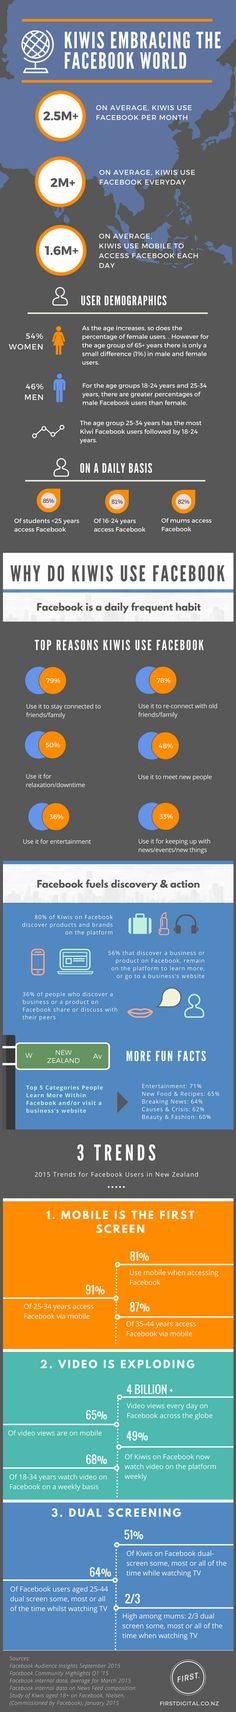 Get the 2015 Facebook Demographics and Usage Statistics in New Zealand. All you need to know about Kiwis on Facebook- statistics & trends in one infographic.